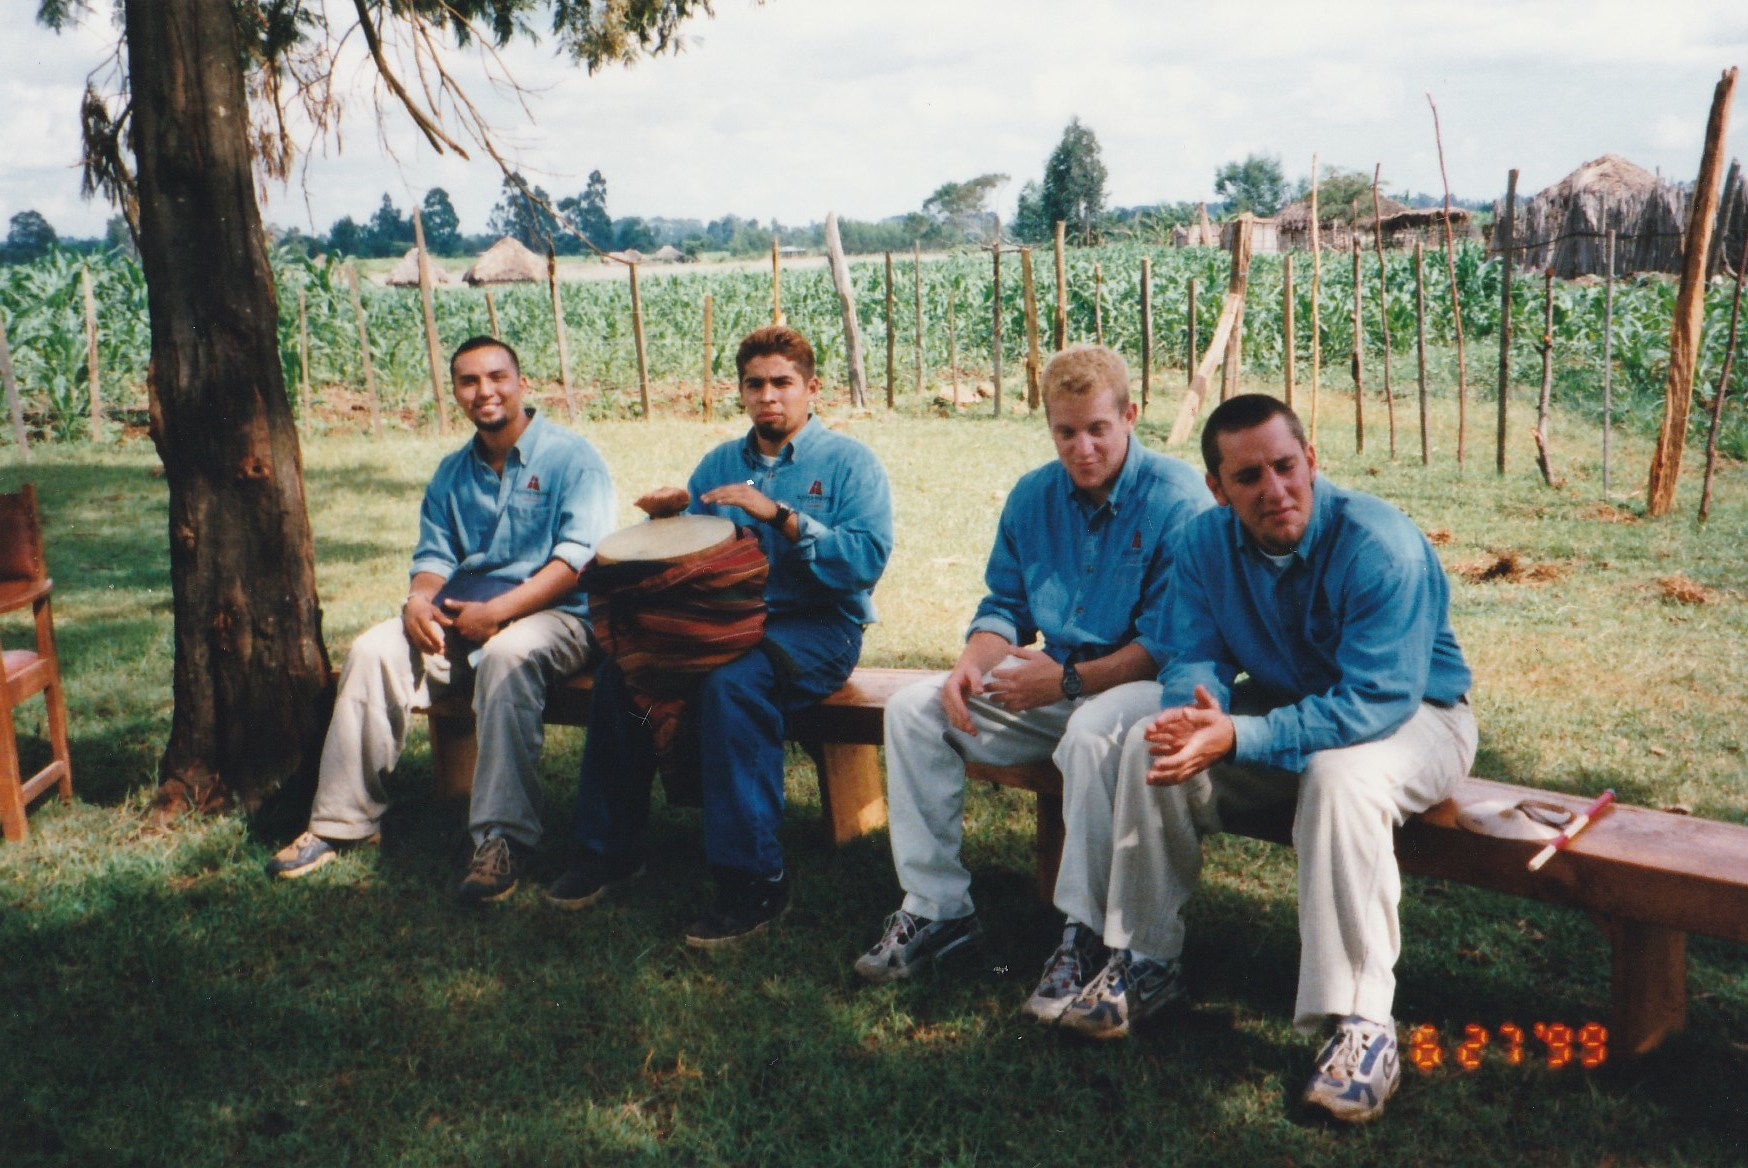 These three young guys on the left, from Azusa Pacific University, are all still around.Gregg Garner serves as President and Founder of G.O.D. Int'l, Robert Munoz, Health Care Specialist, and Jason Roufs, Director of Education.